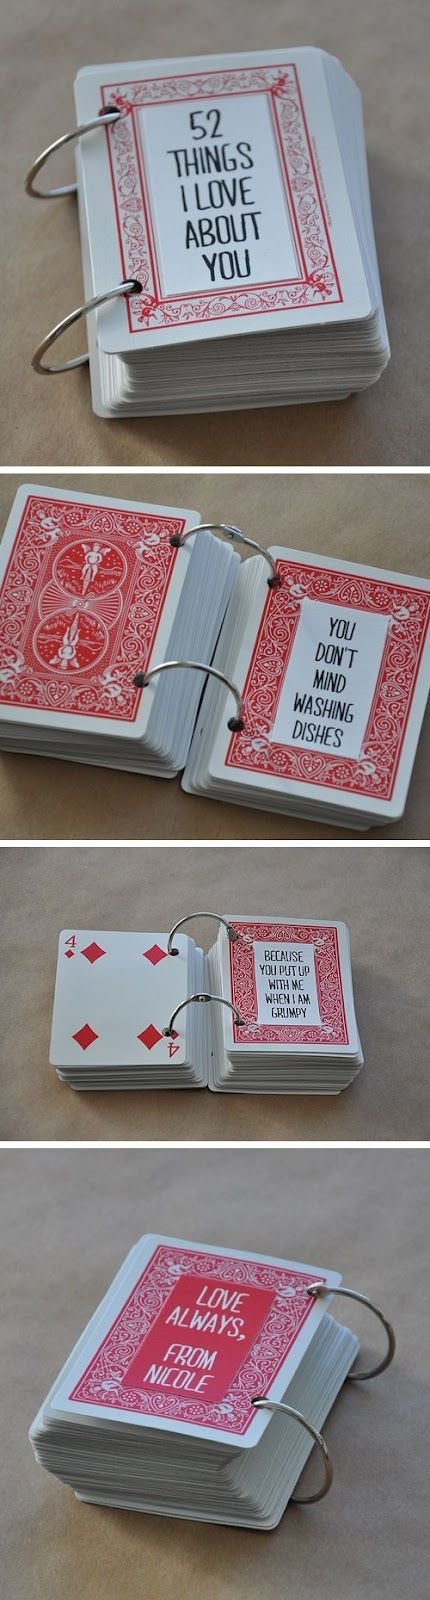 Card Album ( mini scrapbook ) good ideas for bday's, mother and Father's Day, Christmas, etc. #socute #DIY #creativework